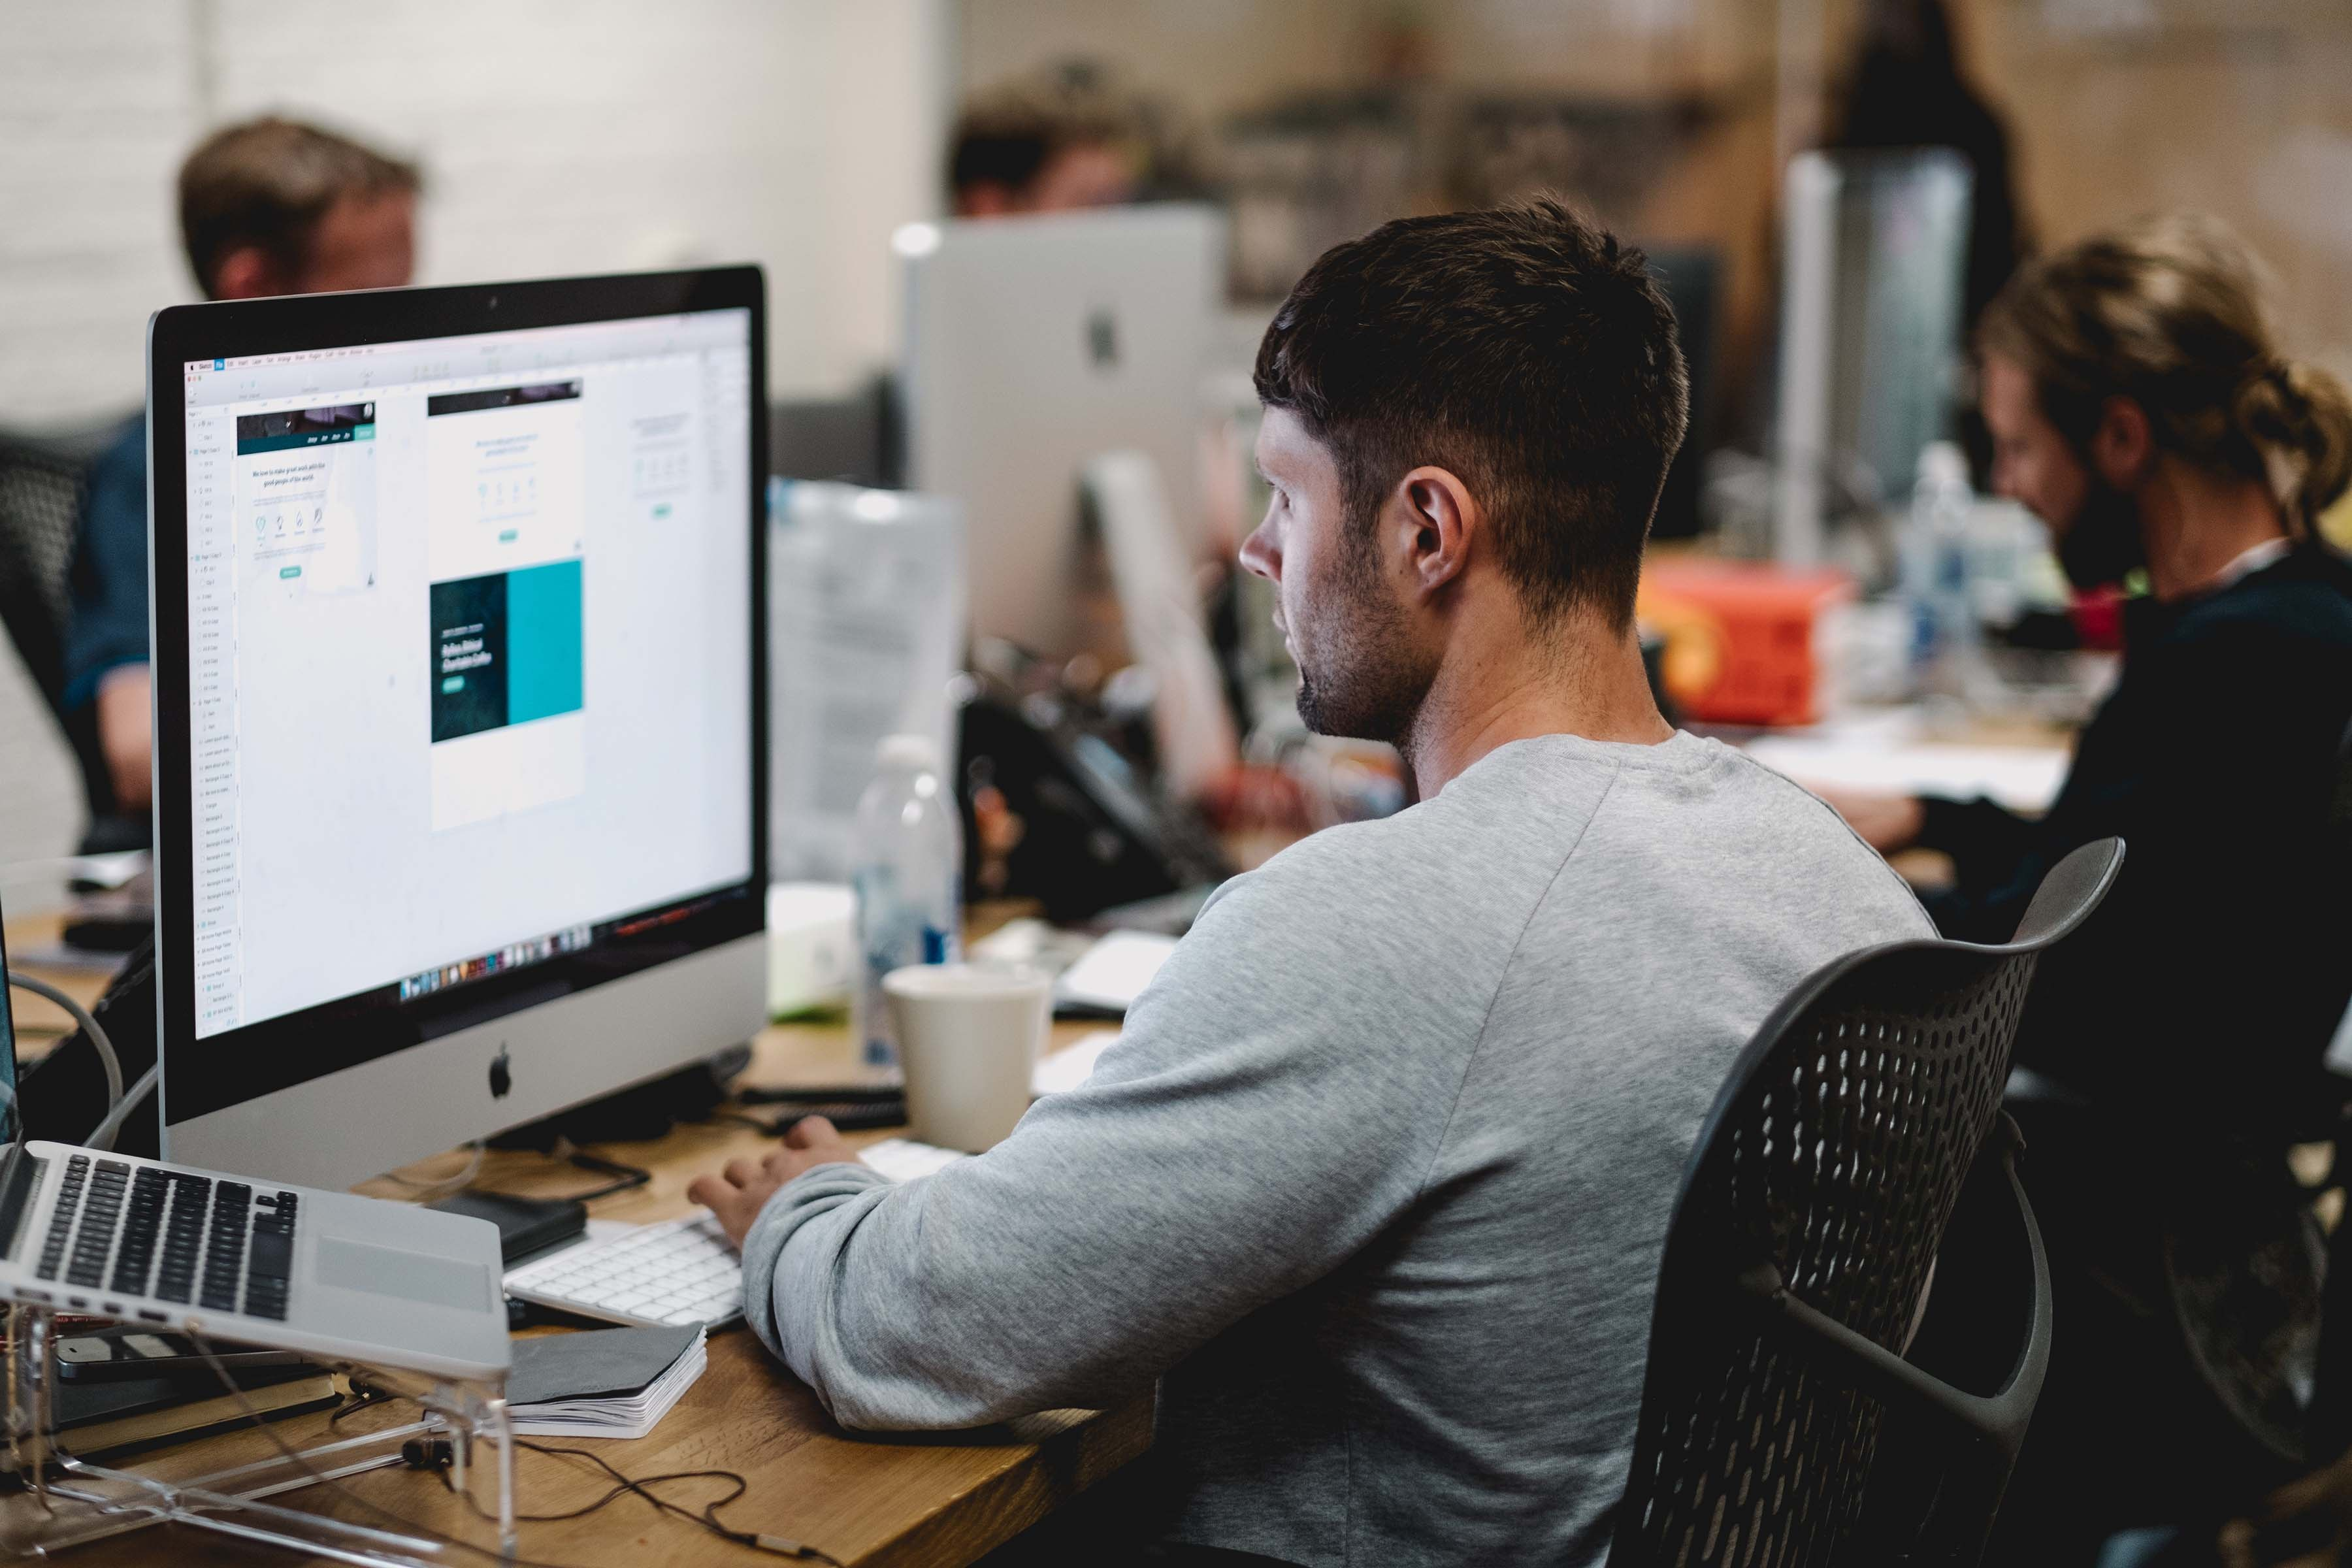 Ergonomically designed furniture goes a long way in determining how productive the users are while at work. Photo by Studio Republic on Unsplash